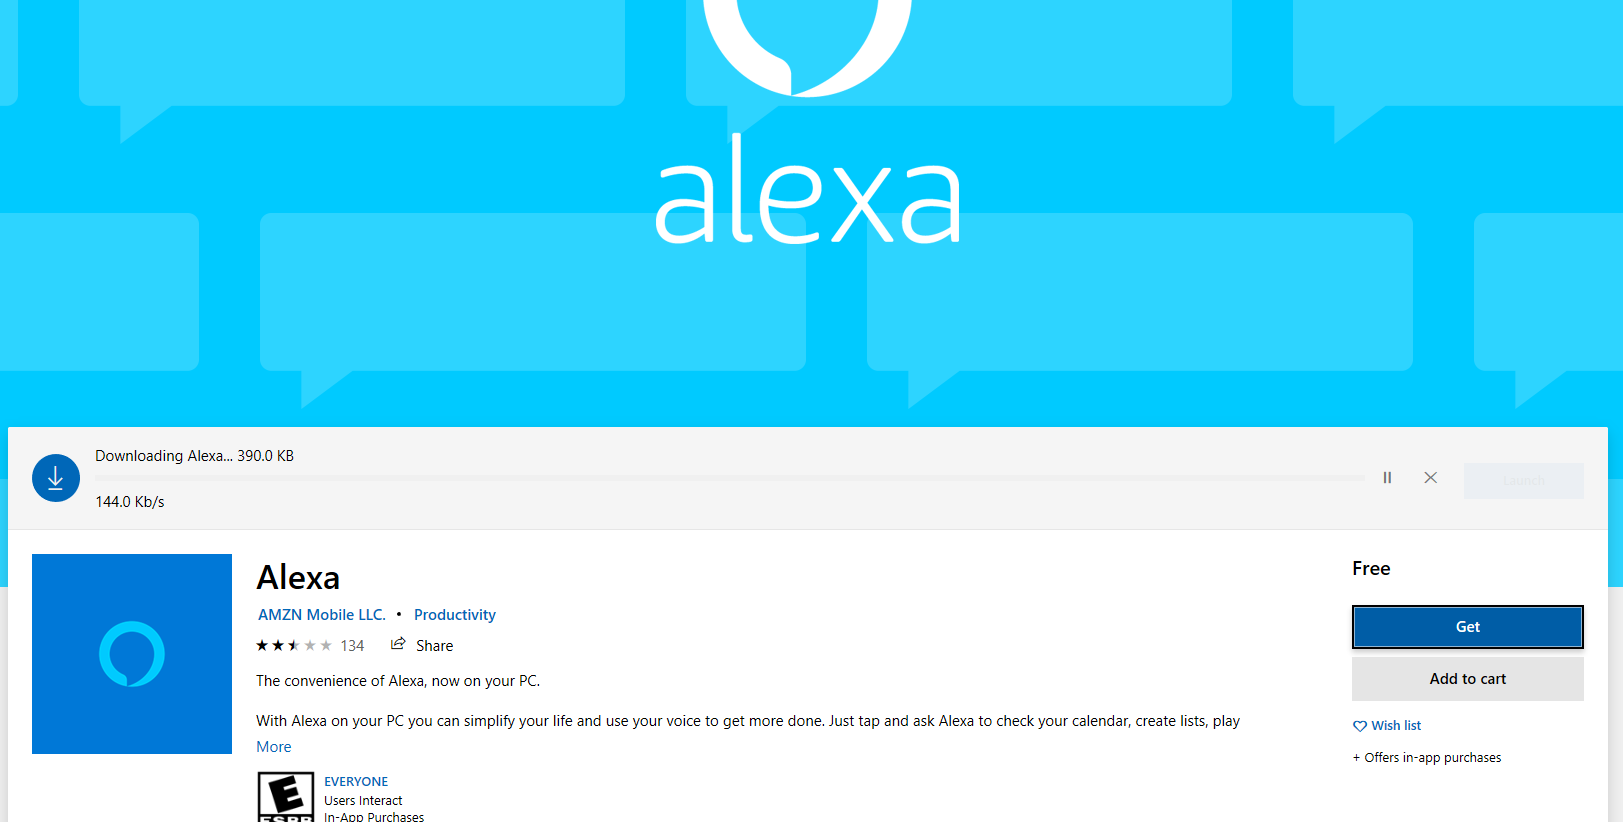 is alexa available for windows 10? - Microsoft Community